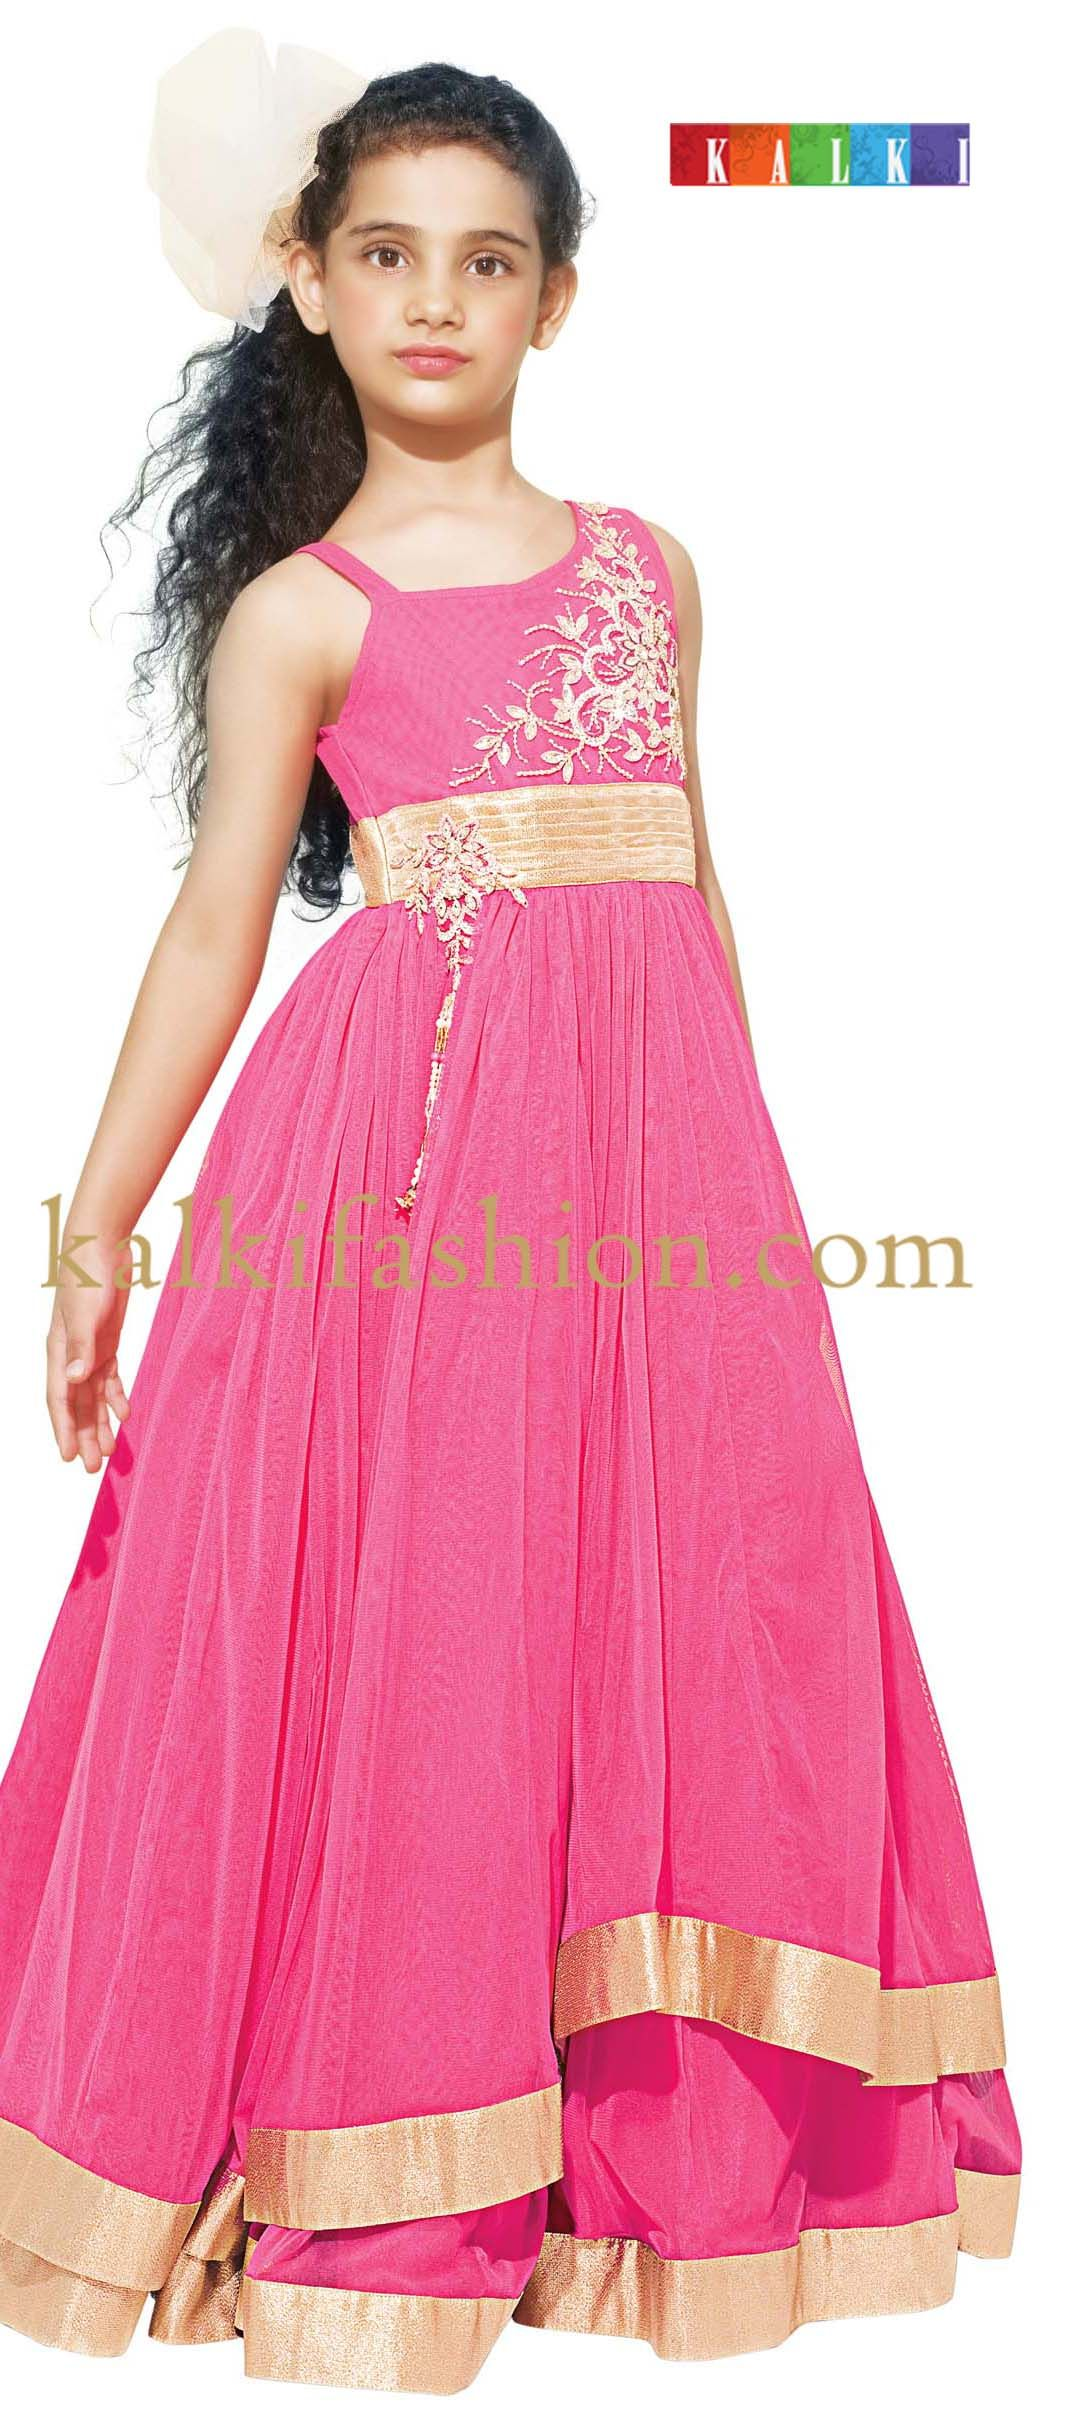 Buy it now http://www.kalkifashion.com/pink-gown-with-double-frills ...